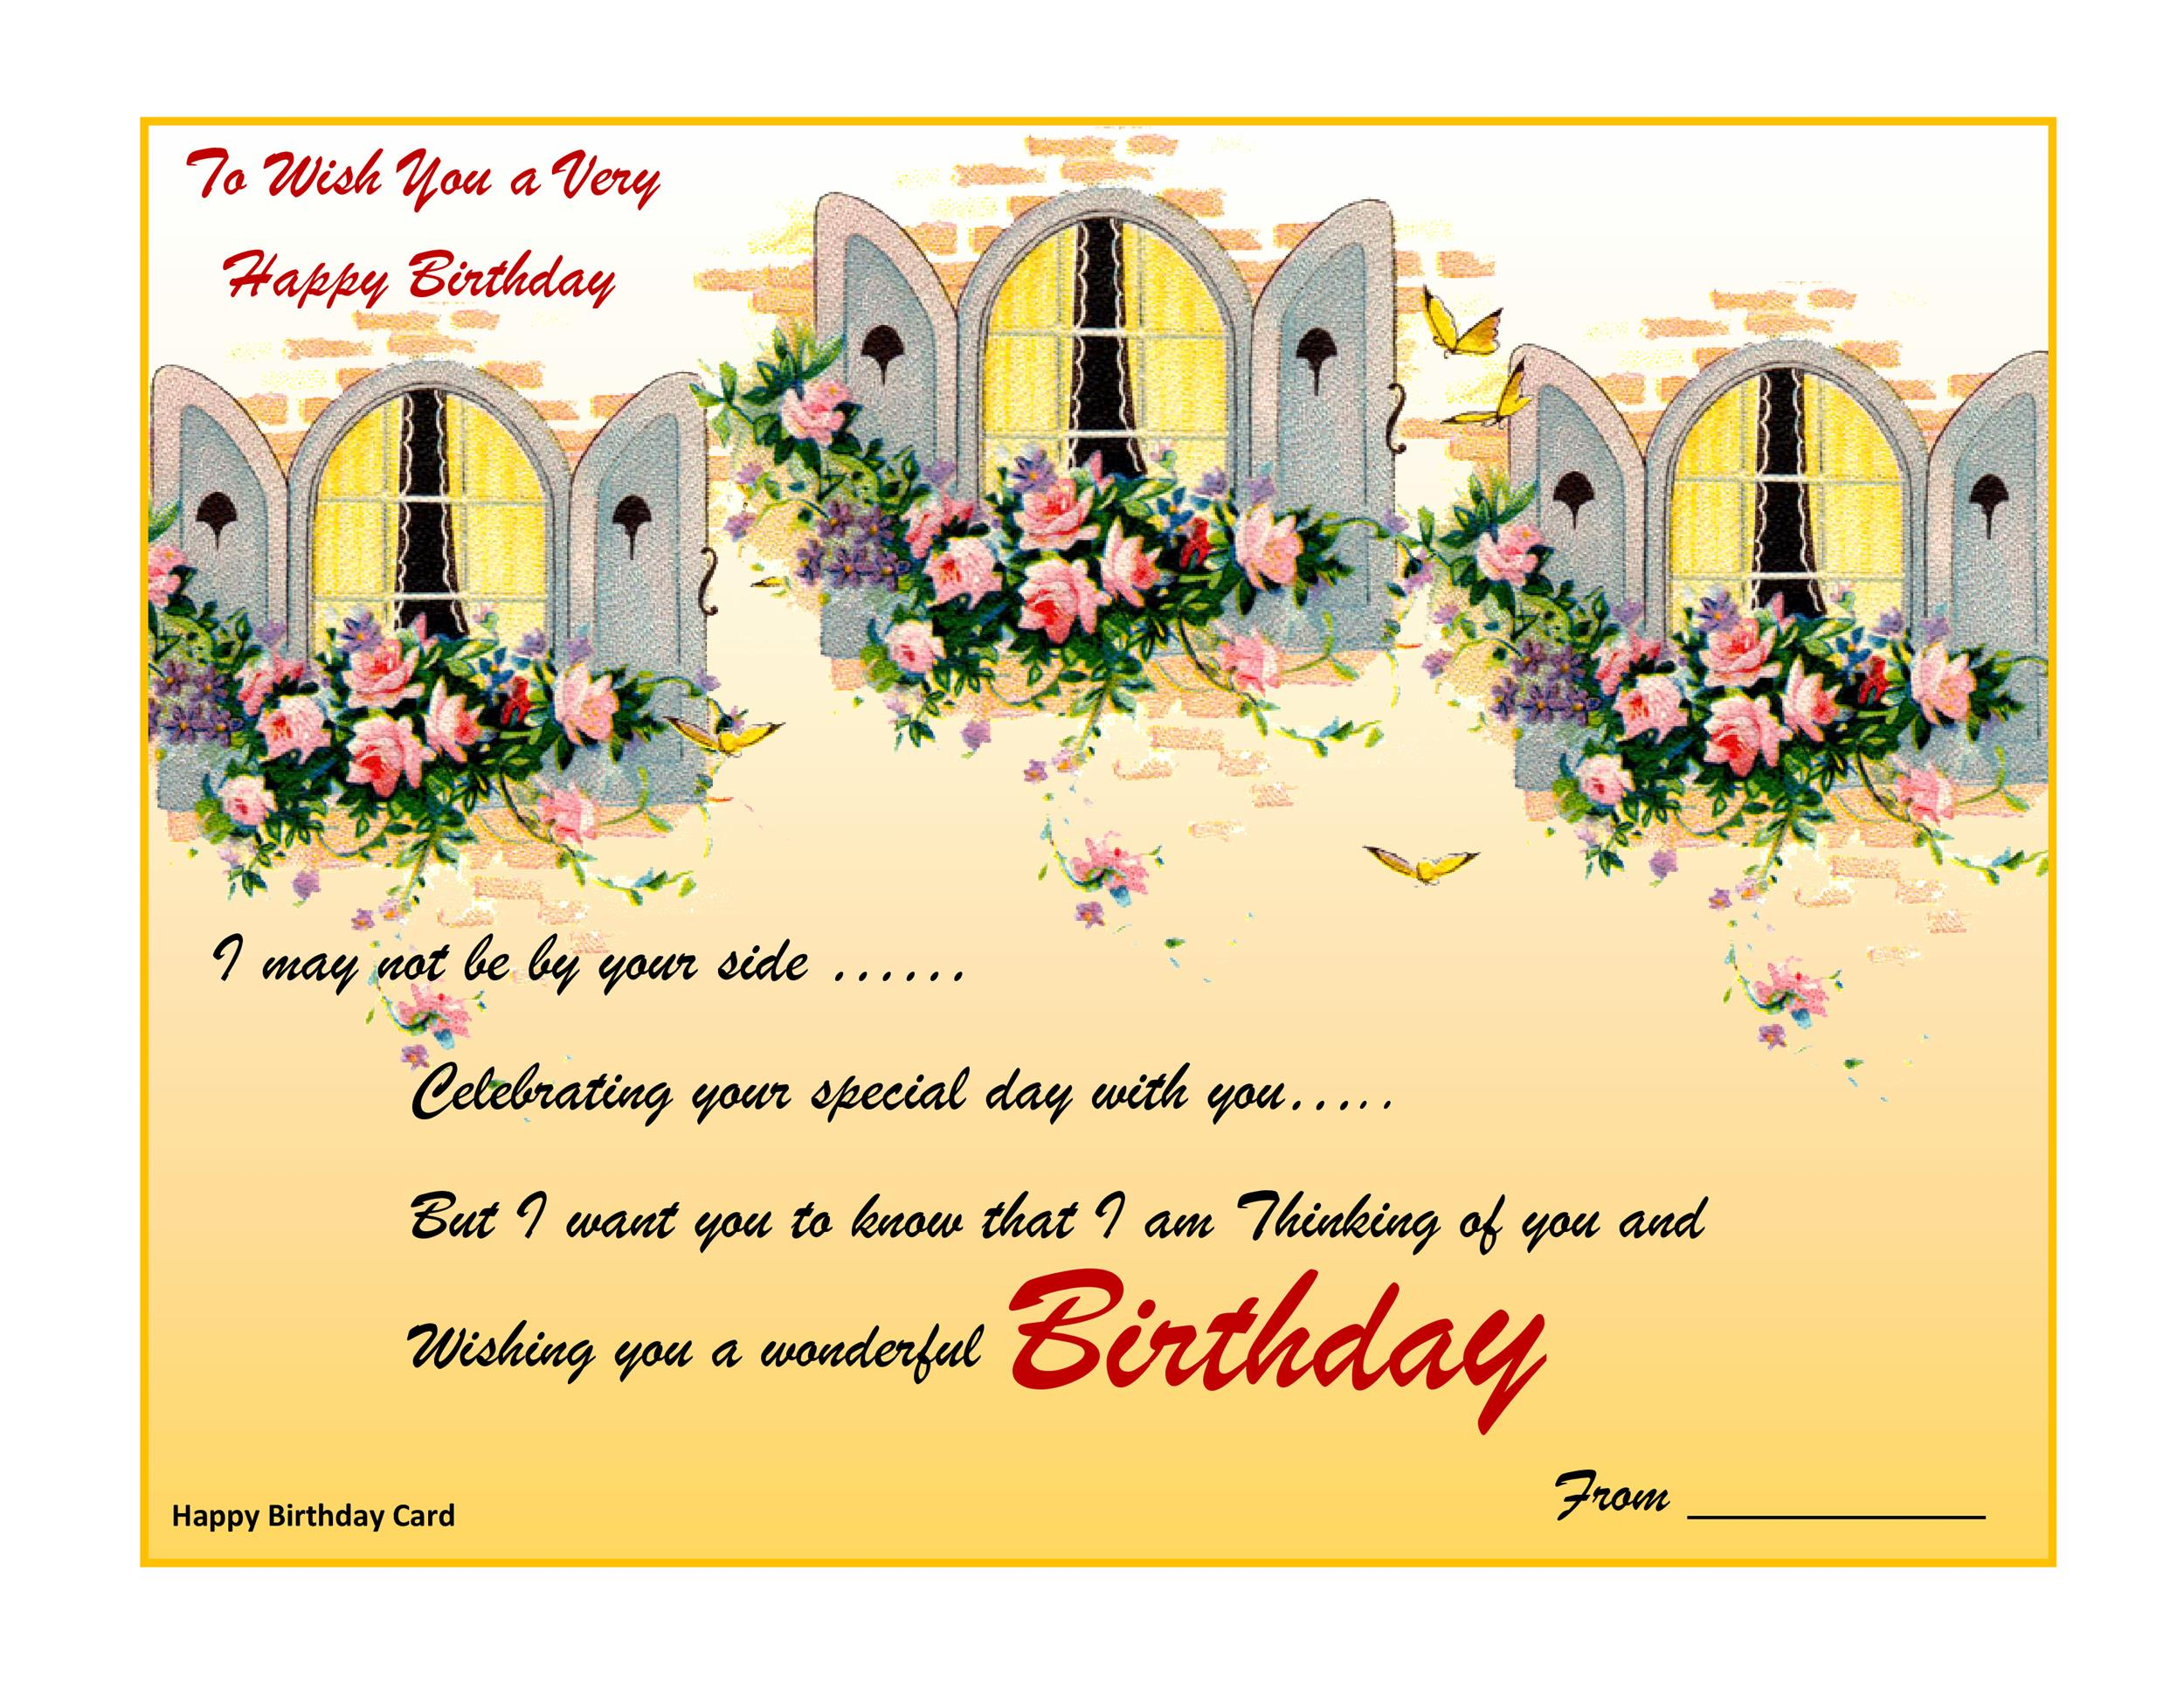 40+ FREE Birthday Card Templates - Template Lab